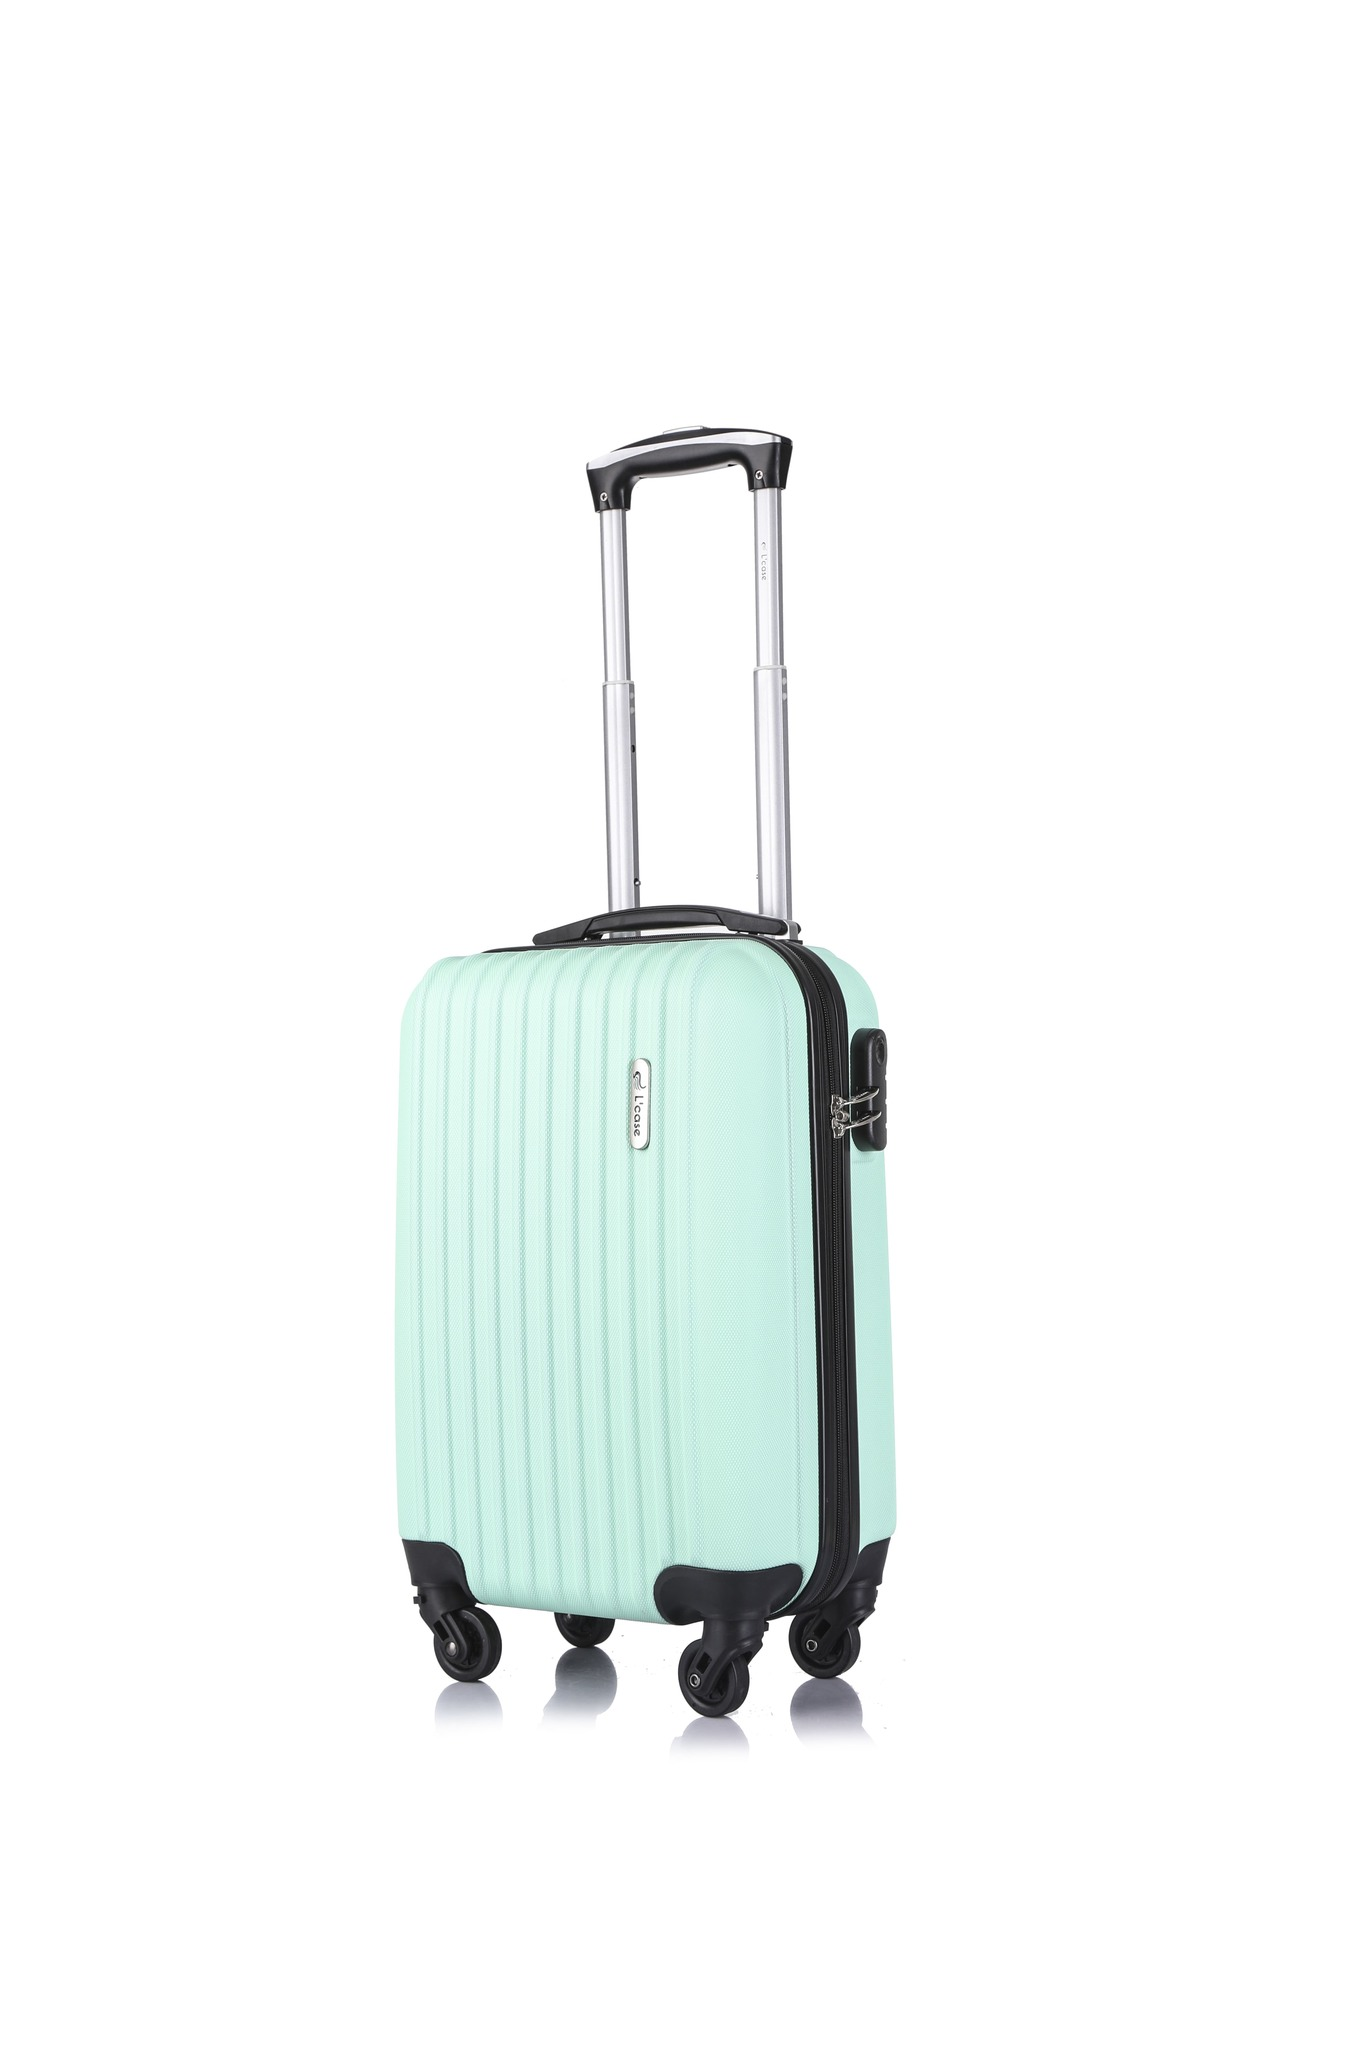 Suitcase Krabi mint suitcase Carry on Luggage Classic travel trip luggage case bag ABS+PC suitcase Travel trolley luggage ABS+PC suitcase Travel trolley luggage business business trip Rolling Luggage     - title=